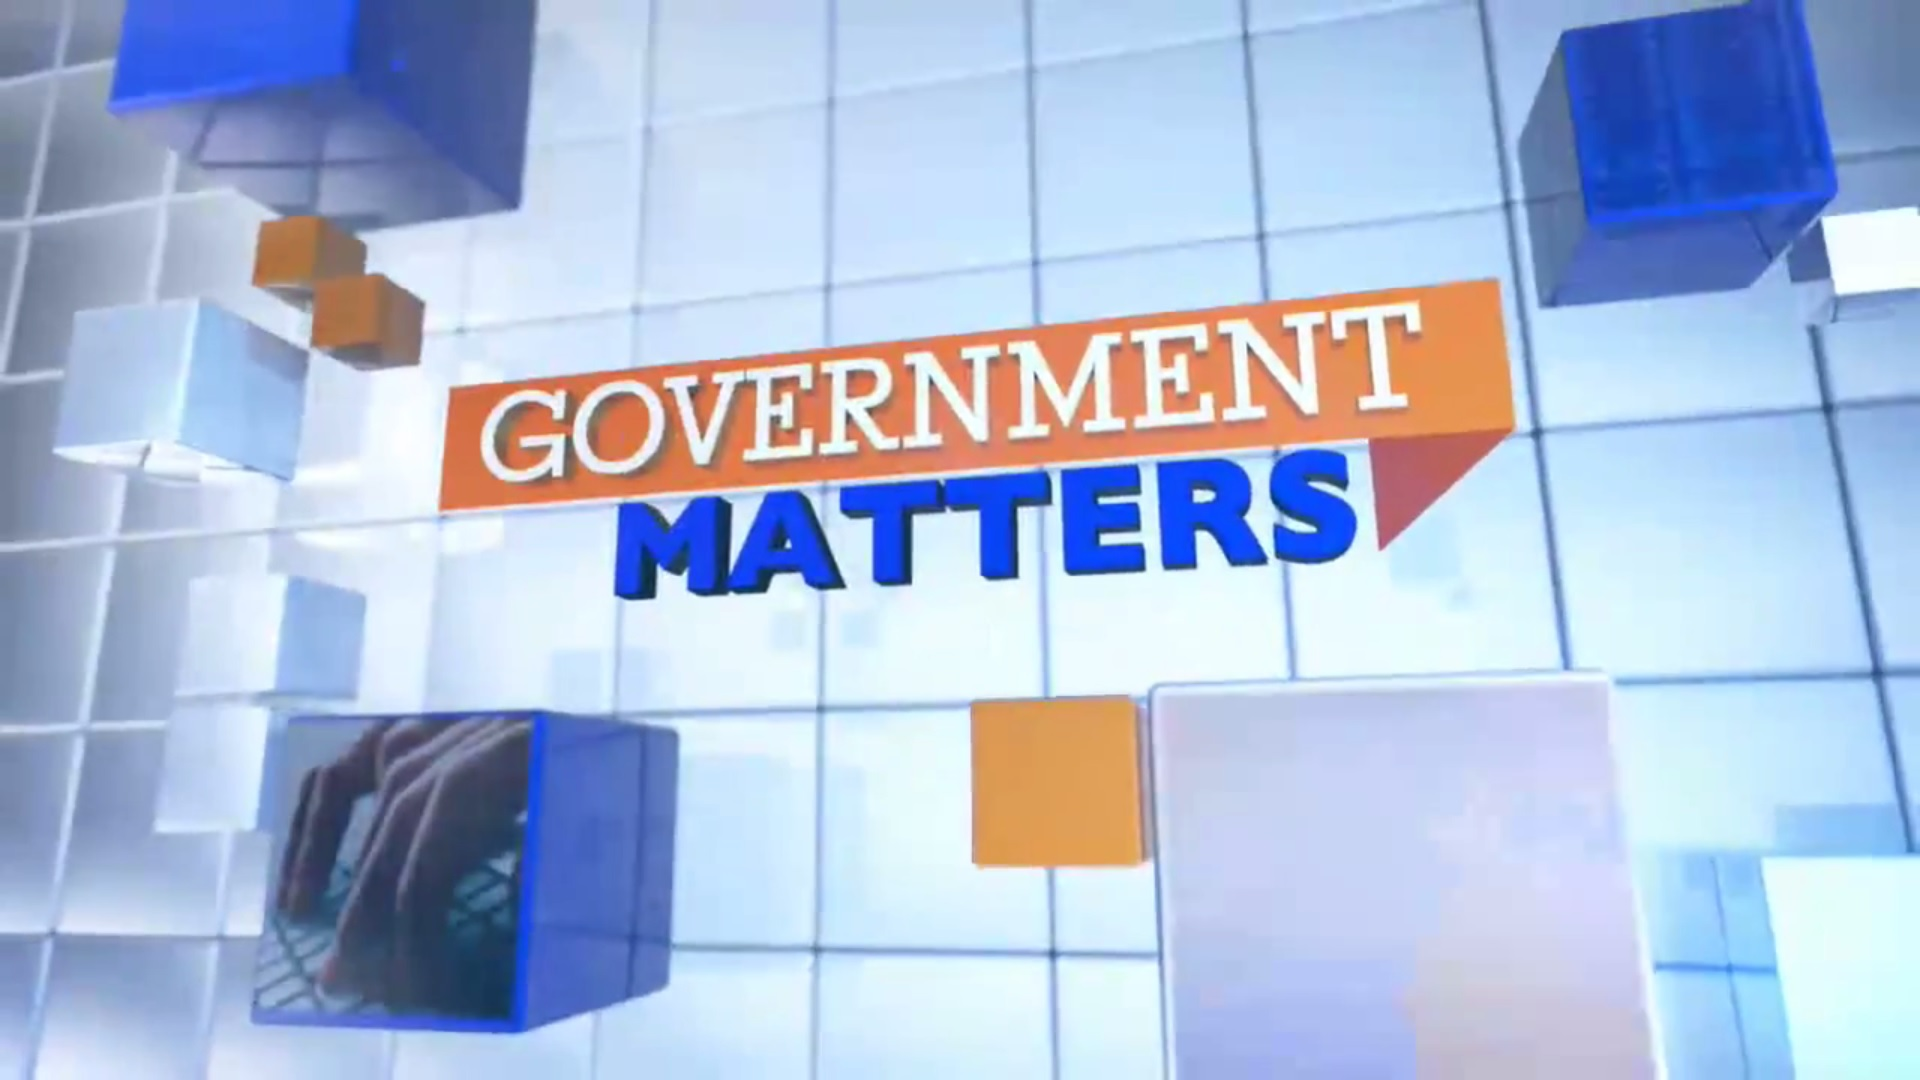 Five years of Government Matters: August 4, 2013 – Present